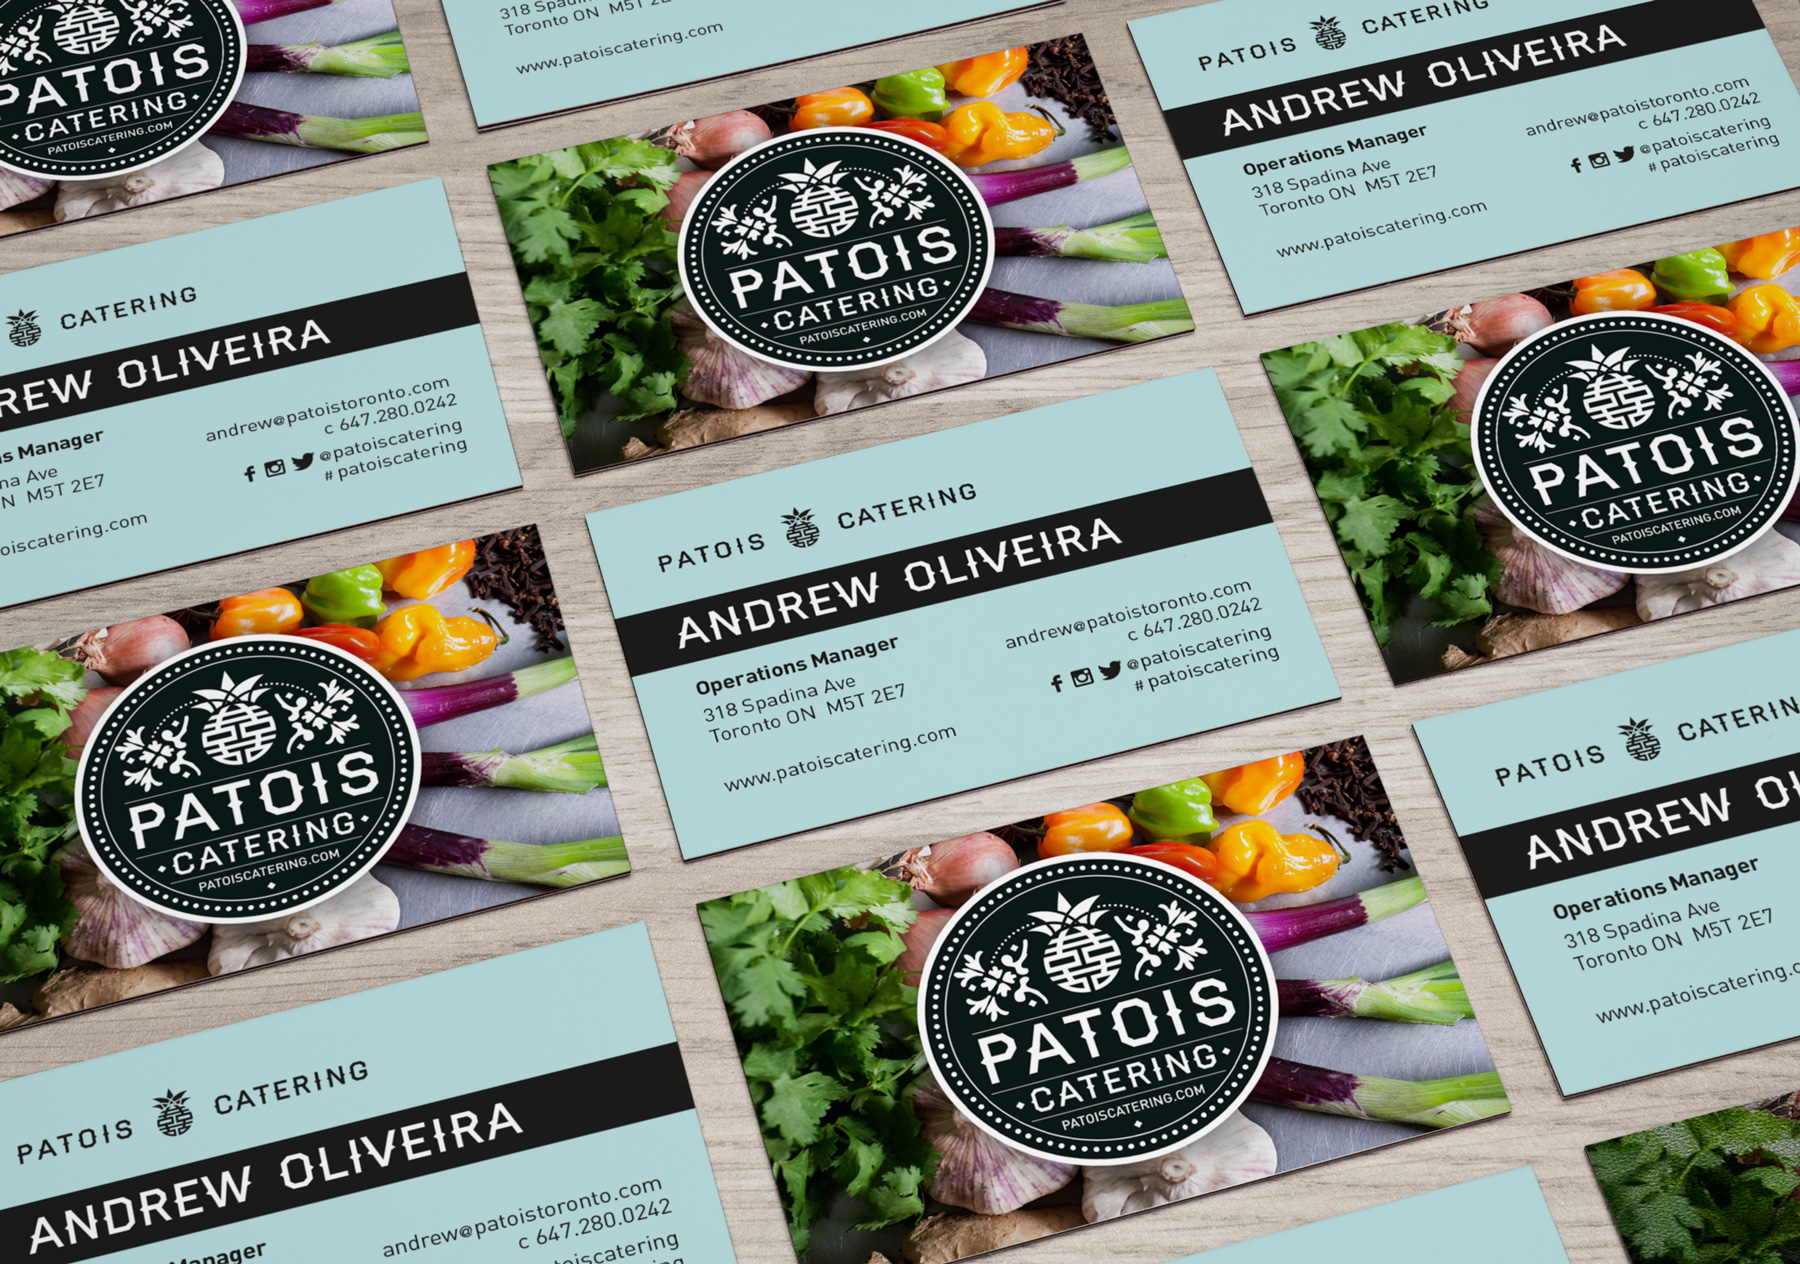 Patois Catering business cards. Designed by Elsie Lam.